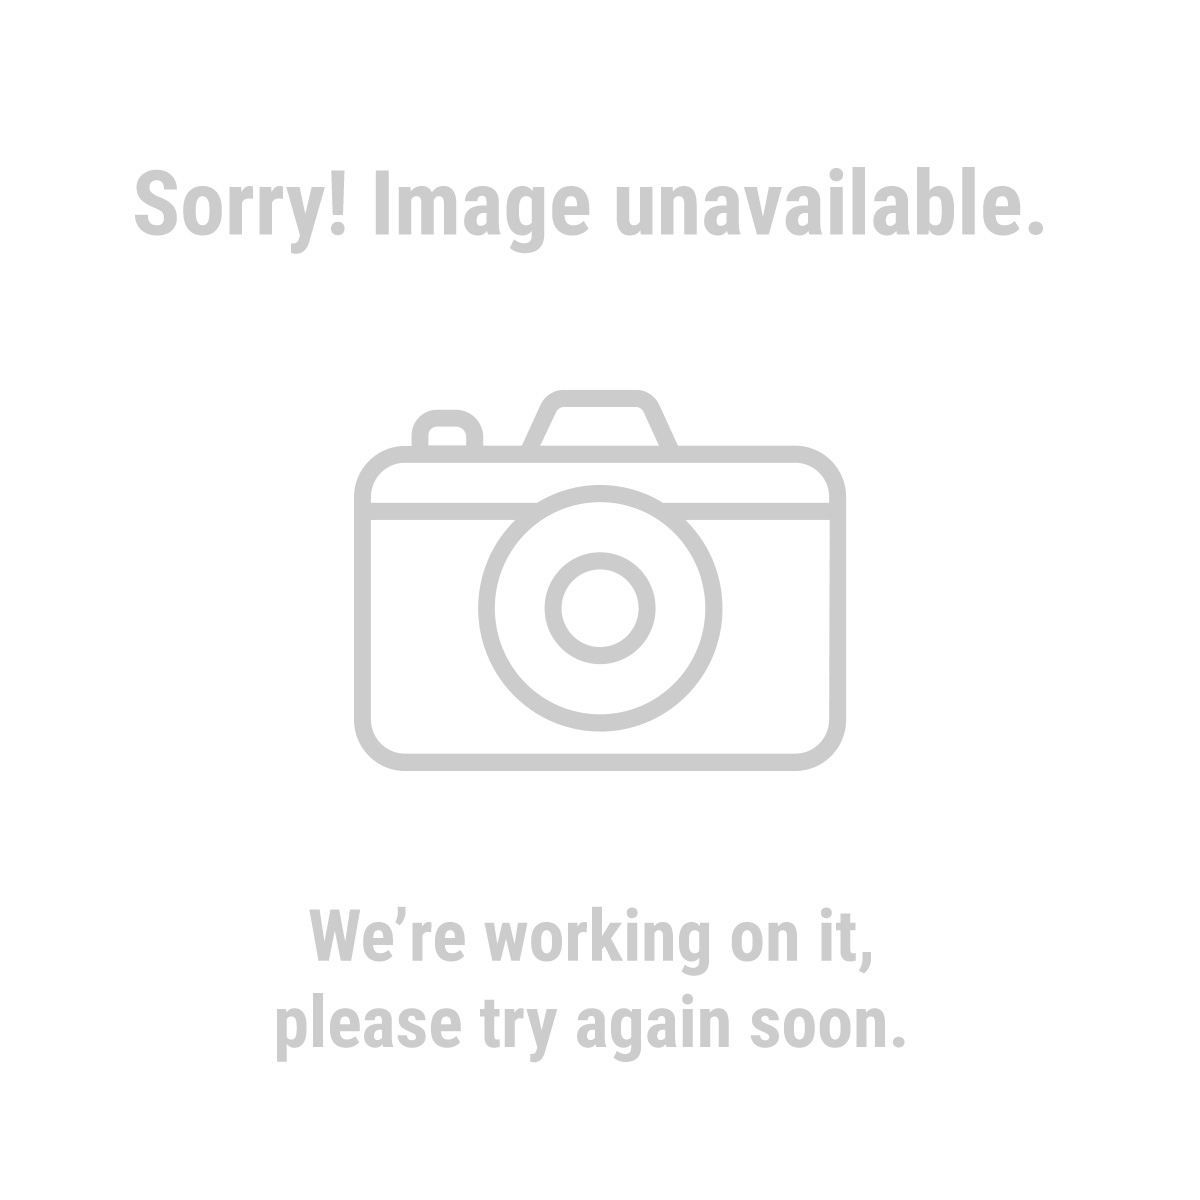 150 Piece Solid Brass Wood Screw Assortment